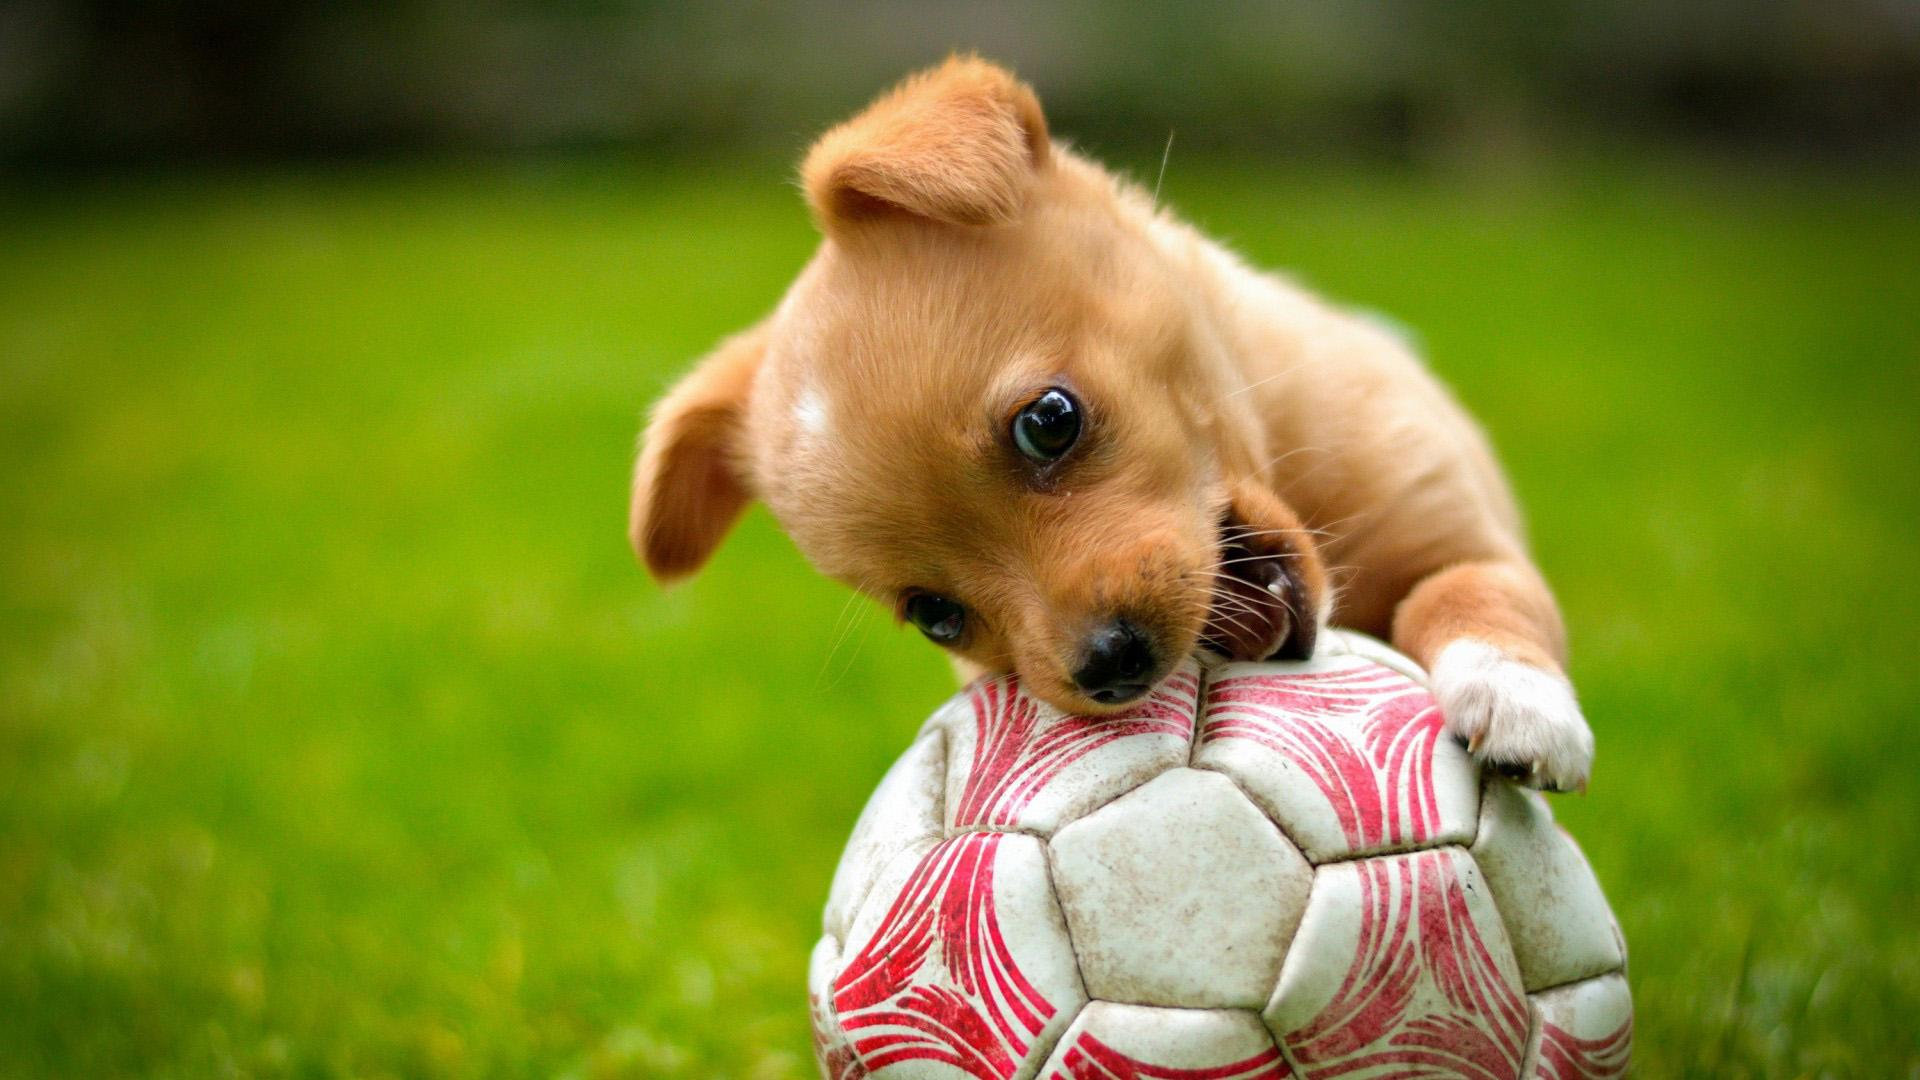 Cute Animals Playing Soccer Wallpaper Teniatko Lapvet